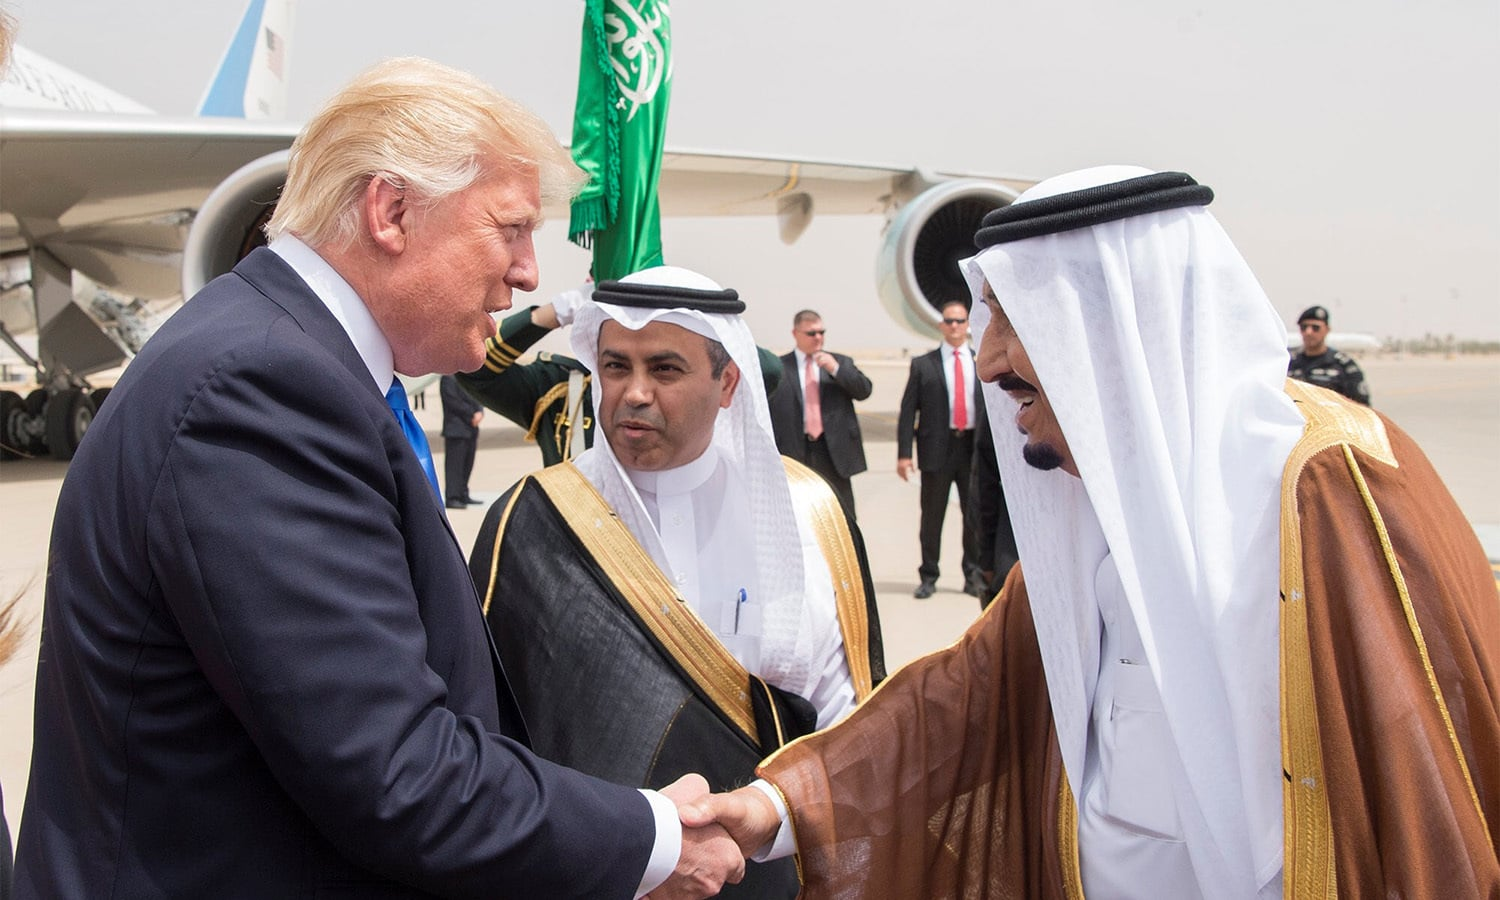 King Salman bin Abdulaziz Al Saud shakes hands with US President Donald Trump during a reception ceremony. ─ Reuters